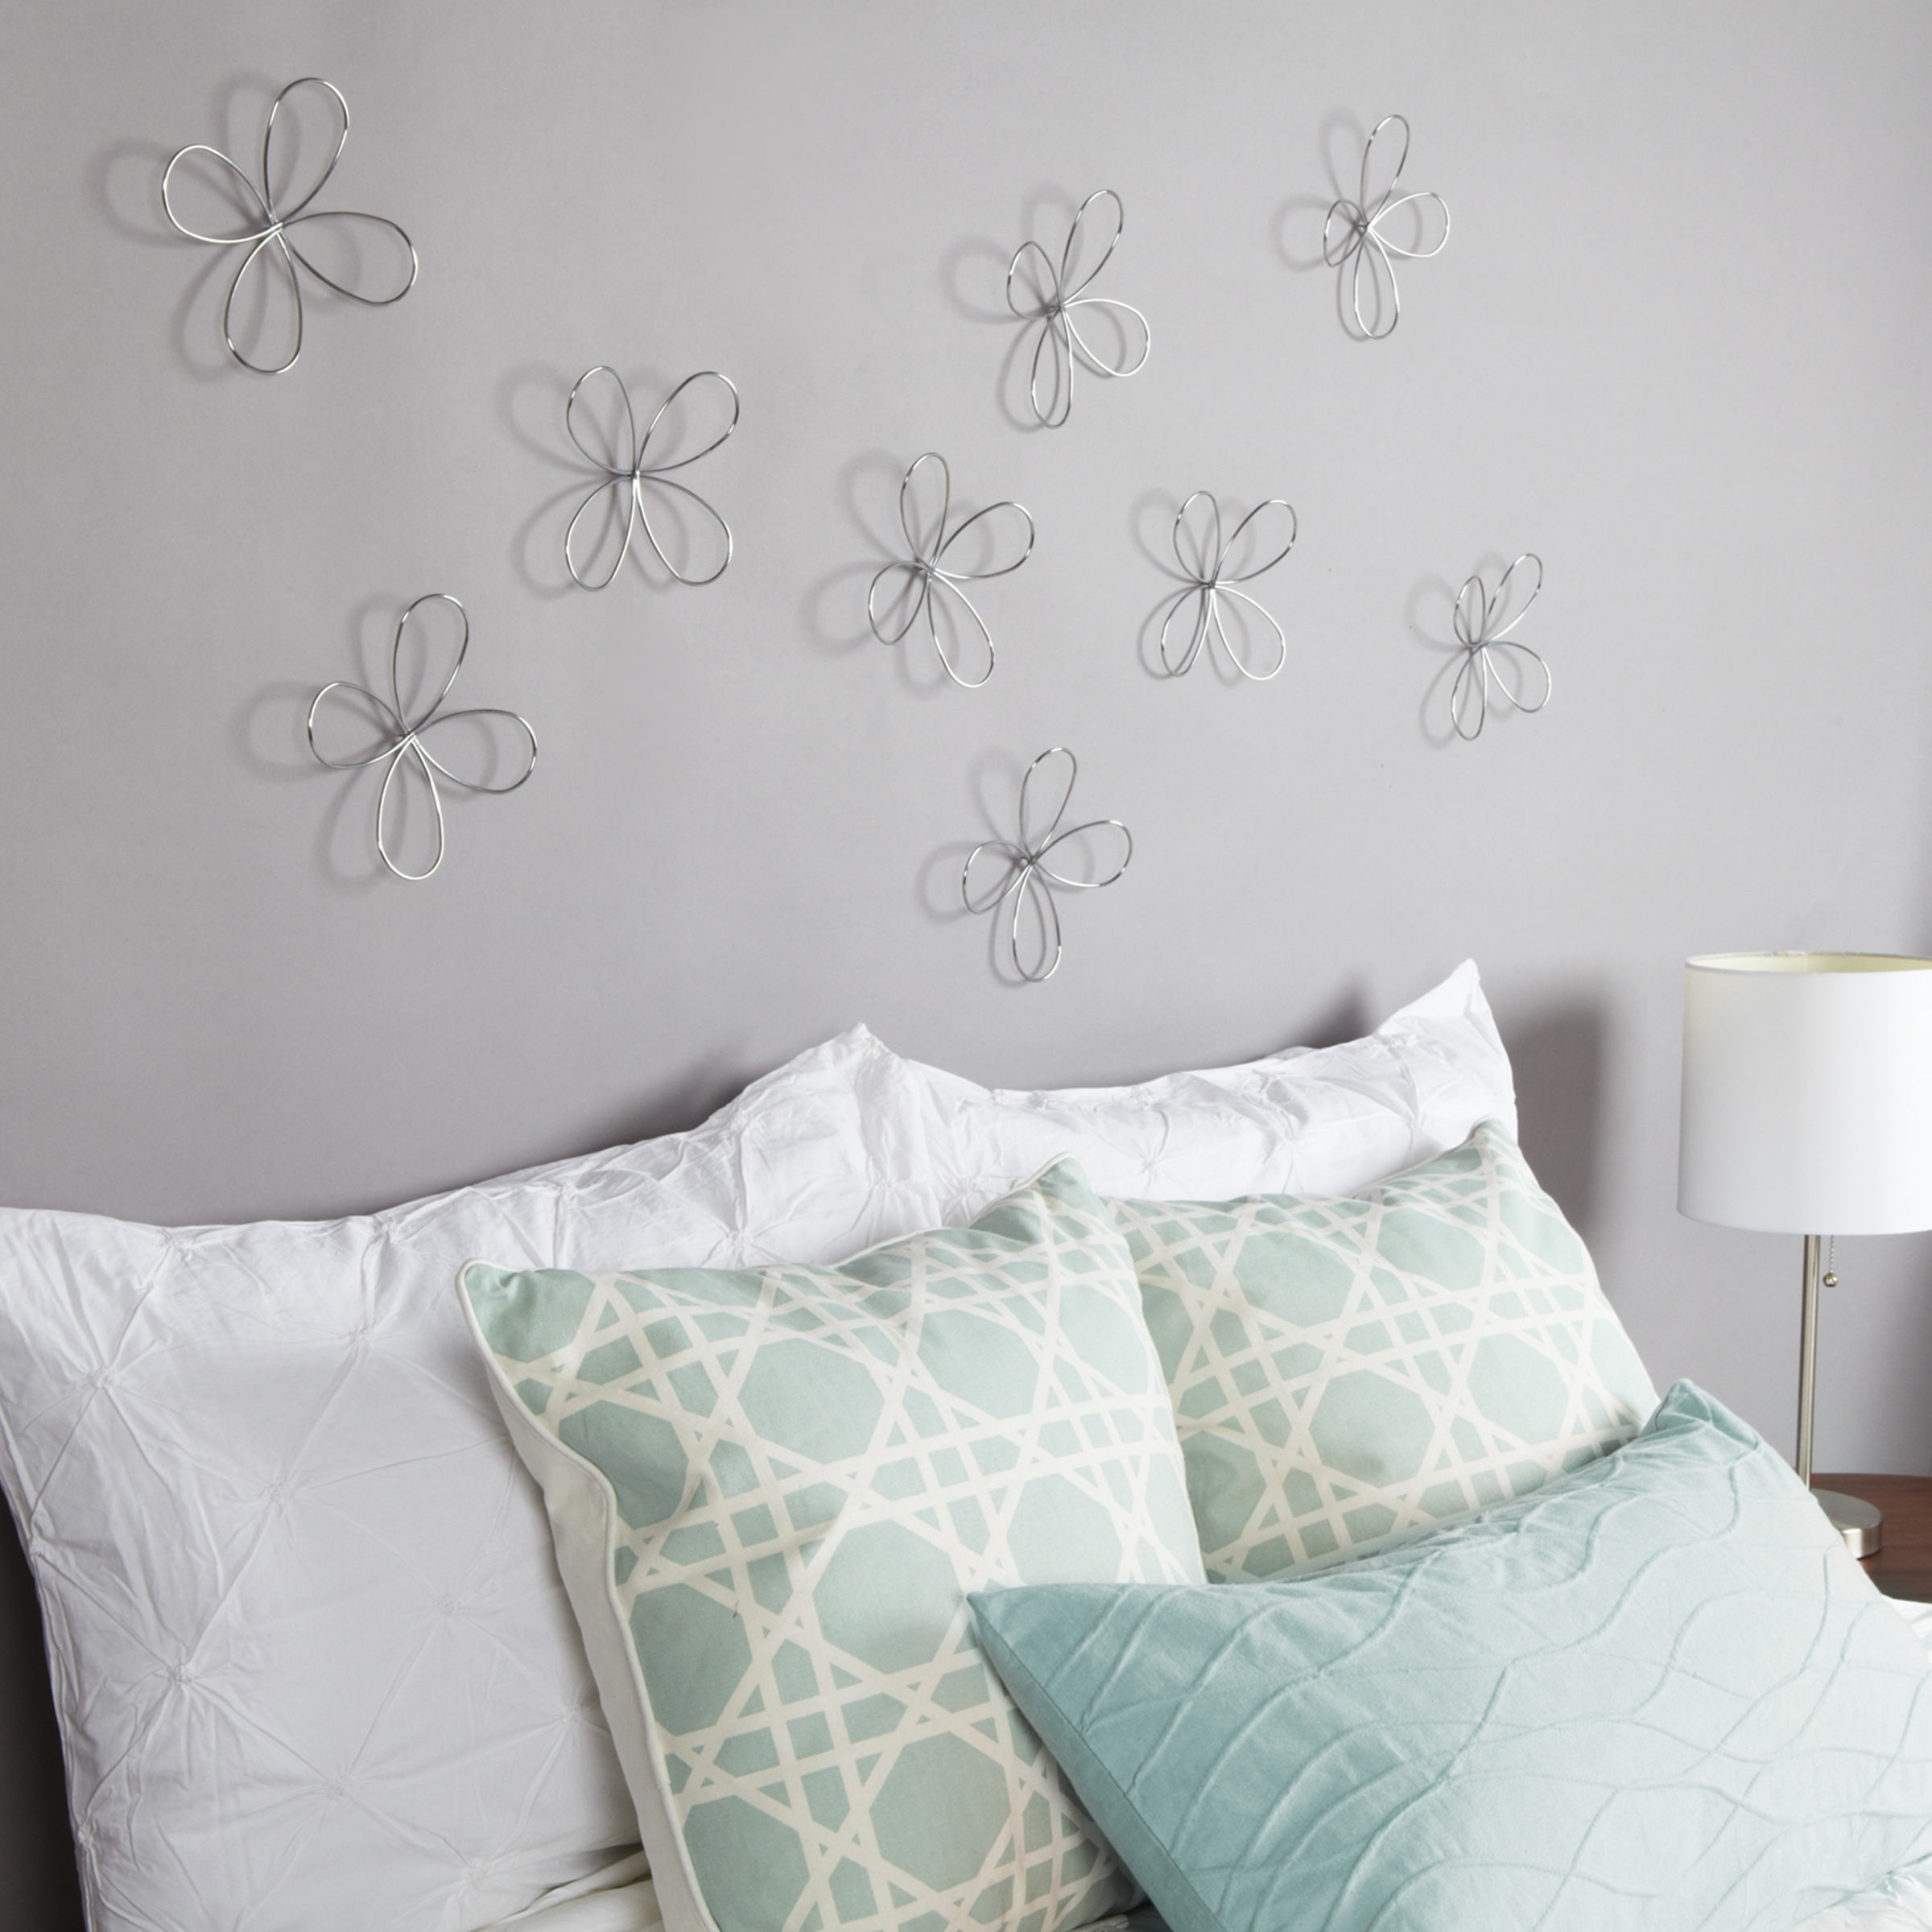 Cool Design Umbra Wall Decor India Flowers Adhesives Canada Leaves With Current Umbra 3D Wall Art (View 1 of 15)